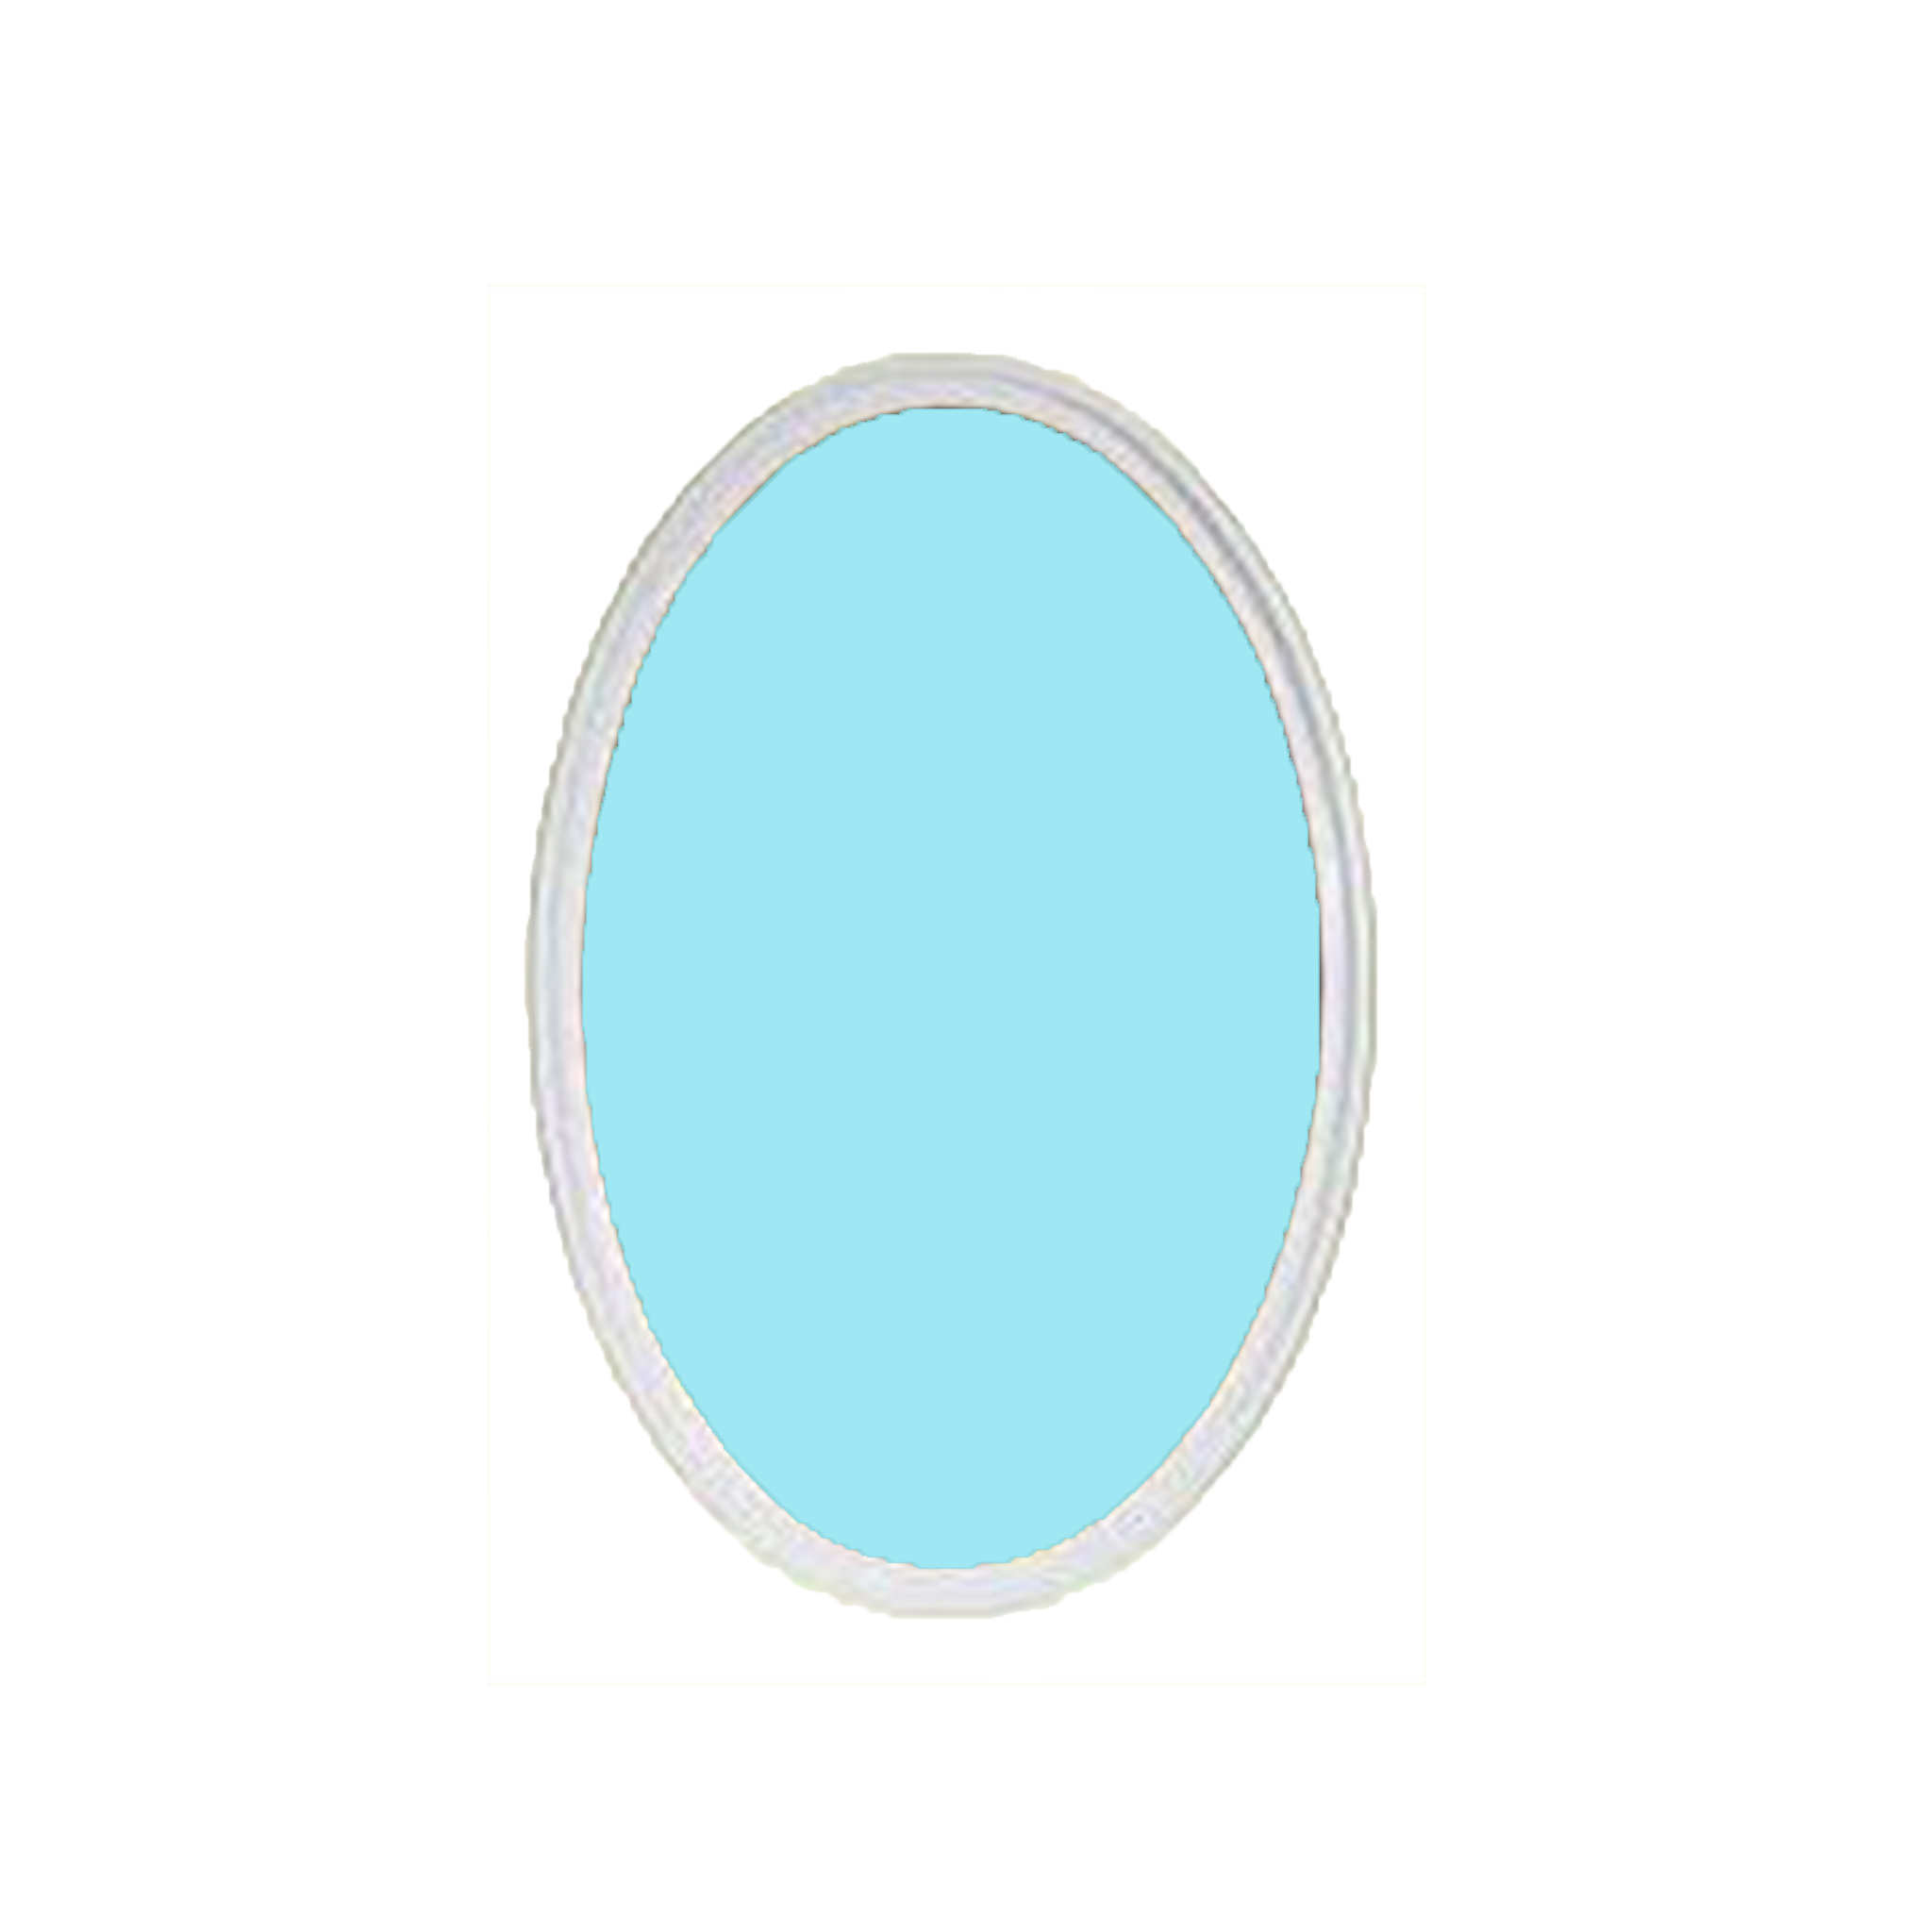 OVAL Image